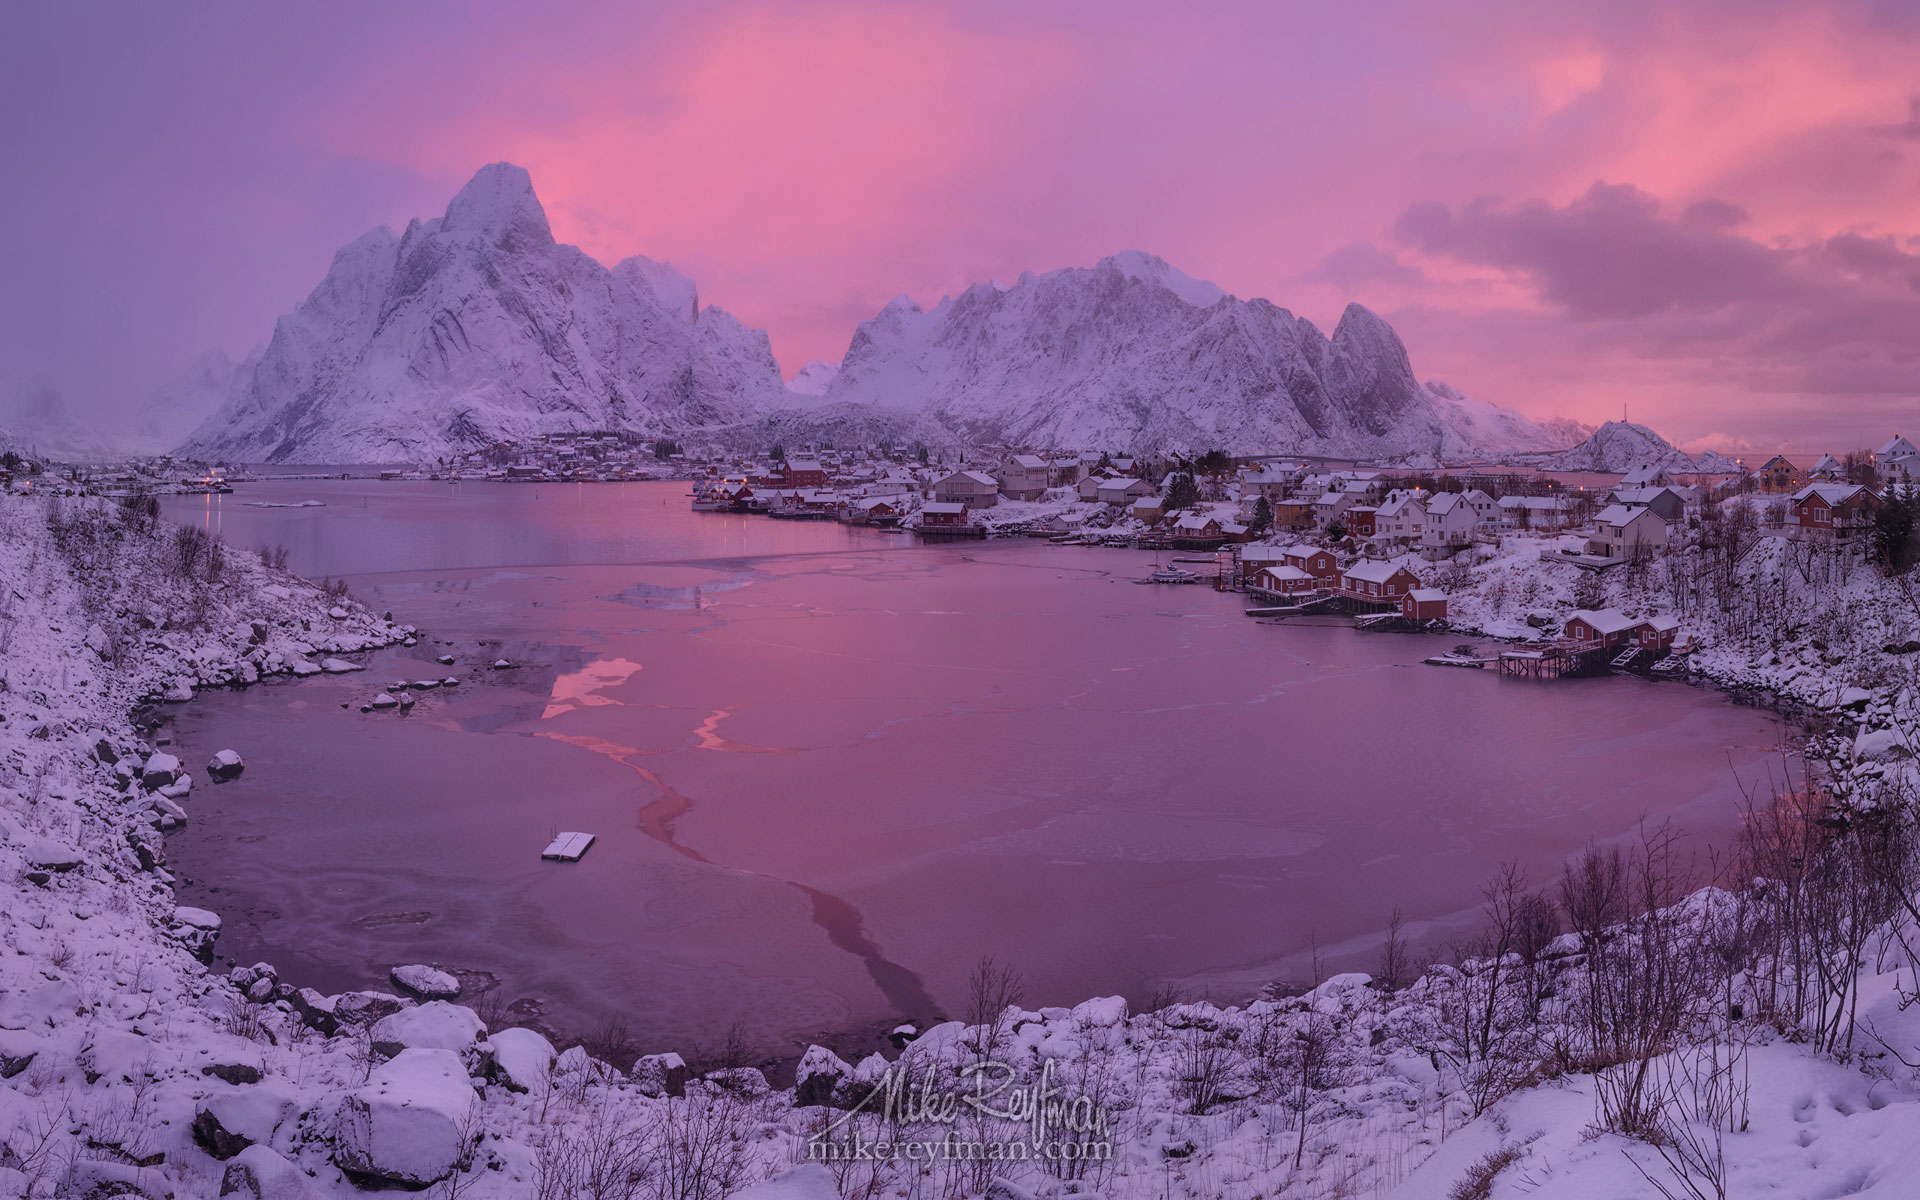 lofoten archipelago in winter arctic norway mike reyfman. Black Bedroom Furniture Sets. Home Design Ideas